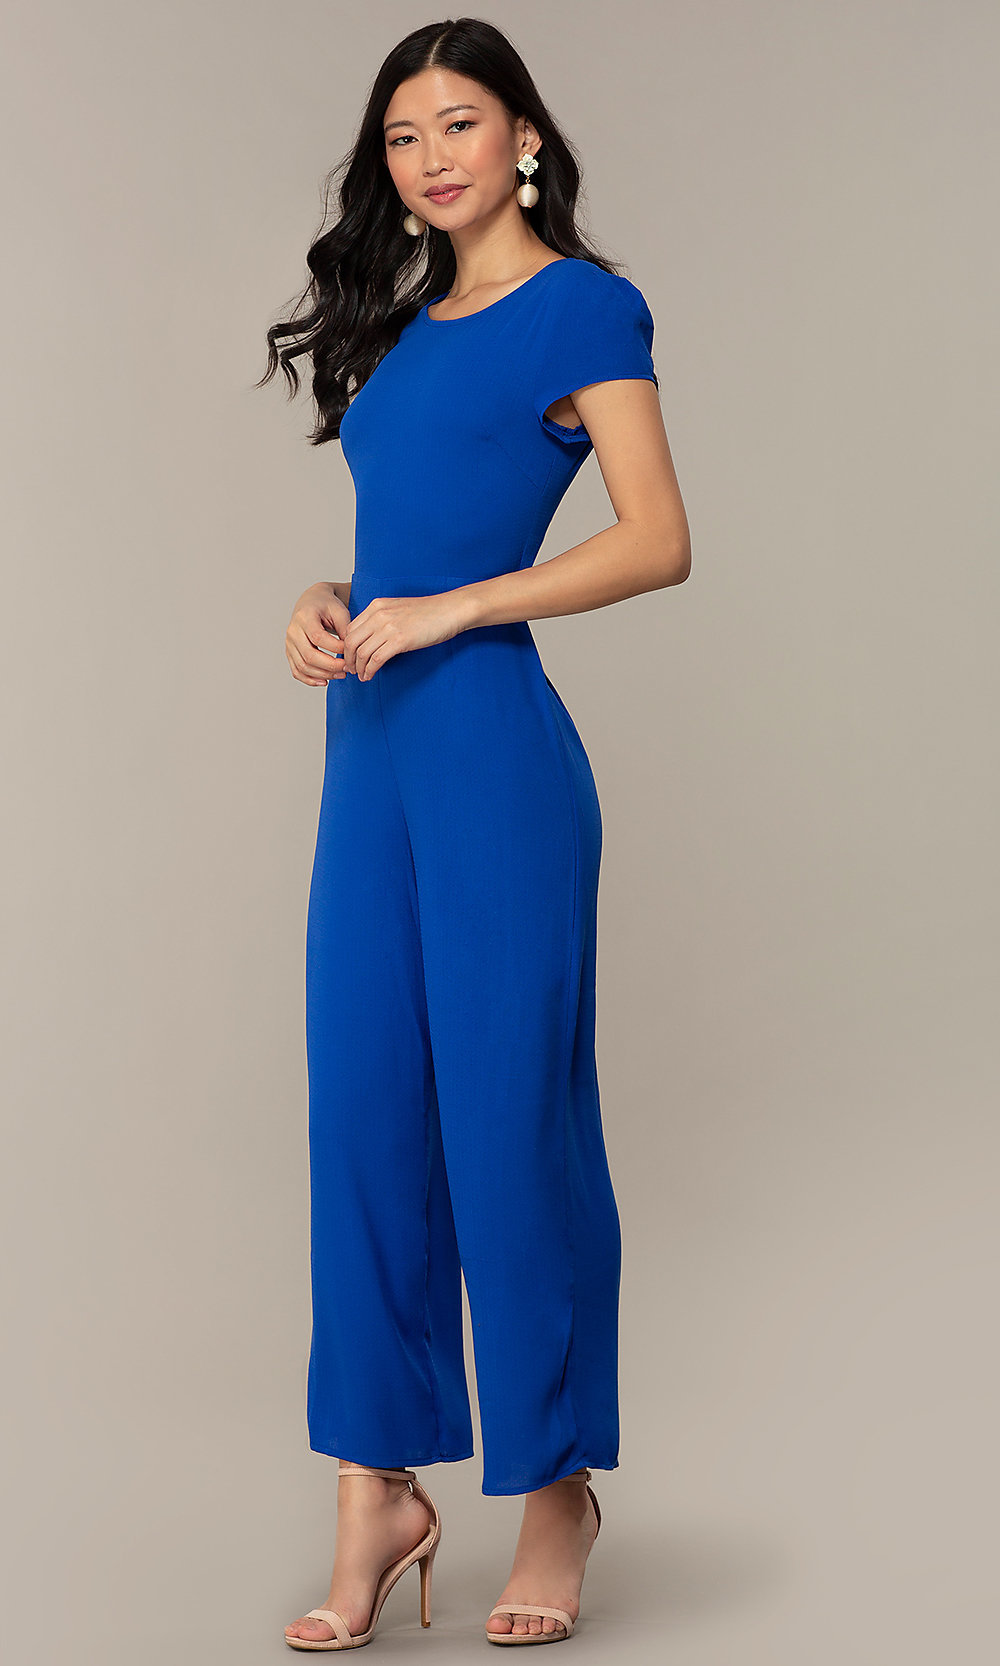 c8fc3d749bd3 Tap to expand · Image of wedding-guest short-sleeve party jumpsuit.